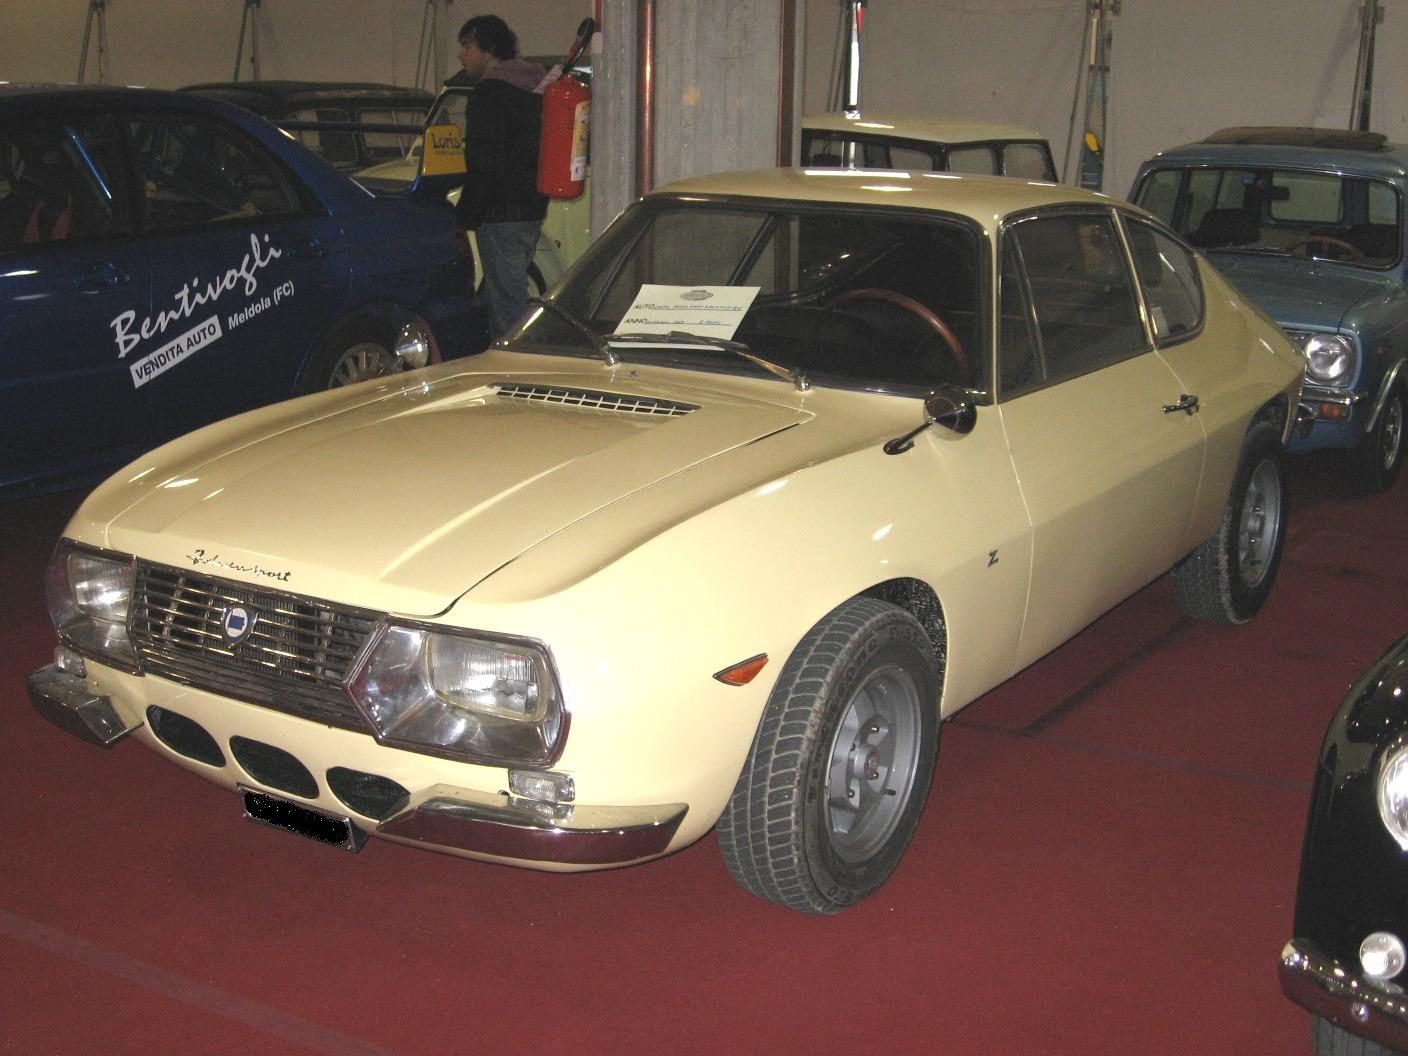 https://upload.wikimedia.org/wikipedia/commons/a/af/Lancia_Fulvia-Sport-Zagato.JPG